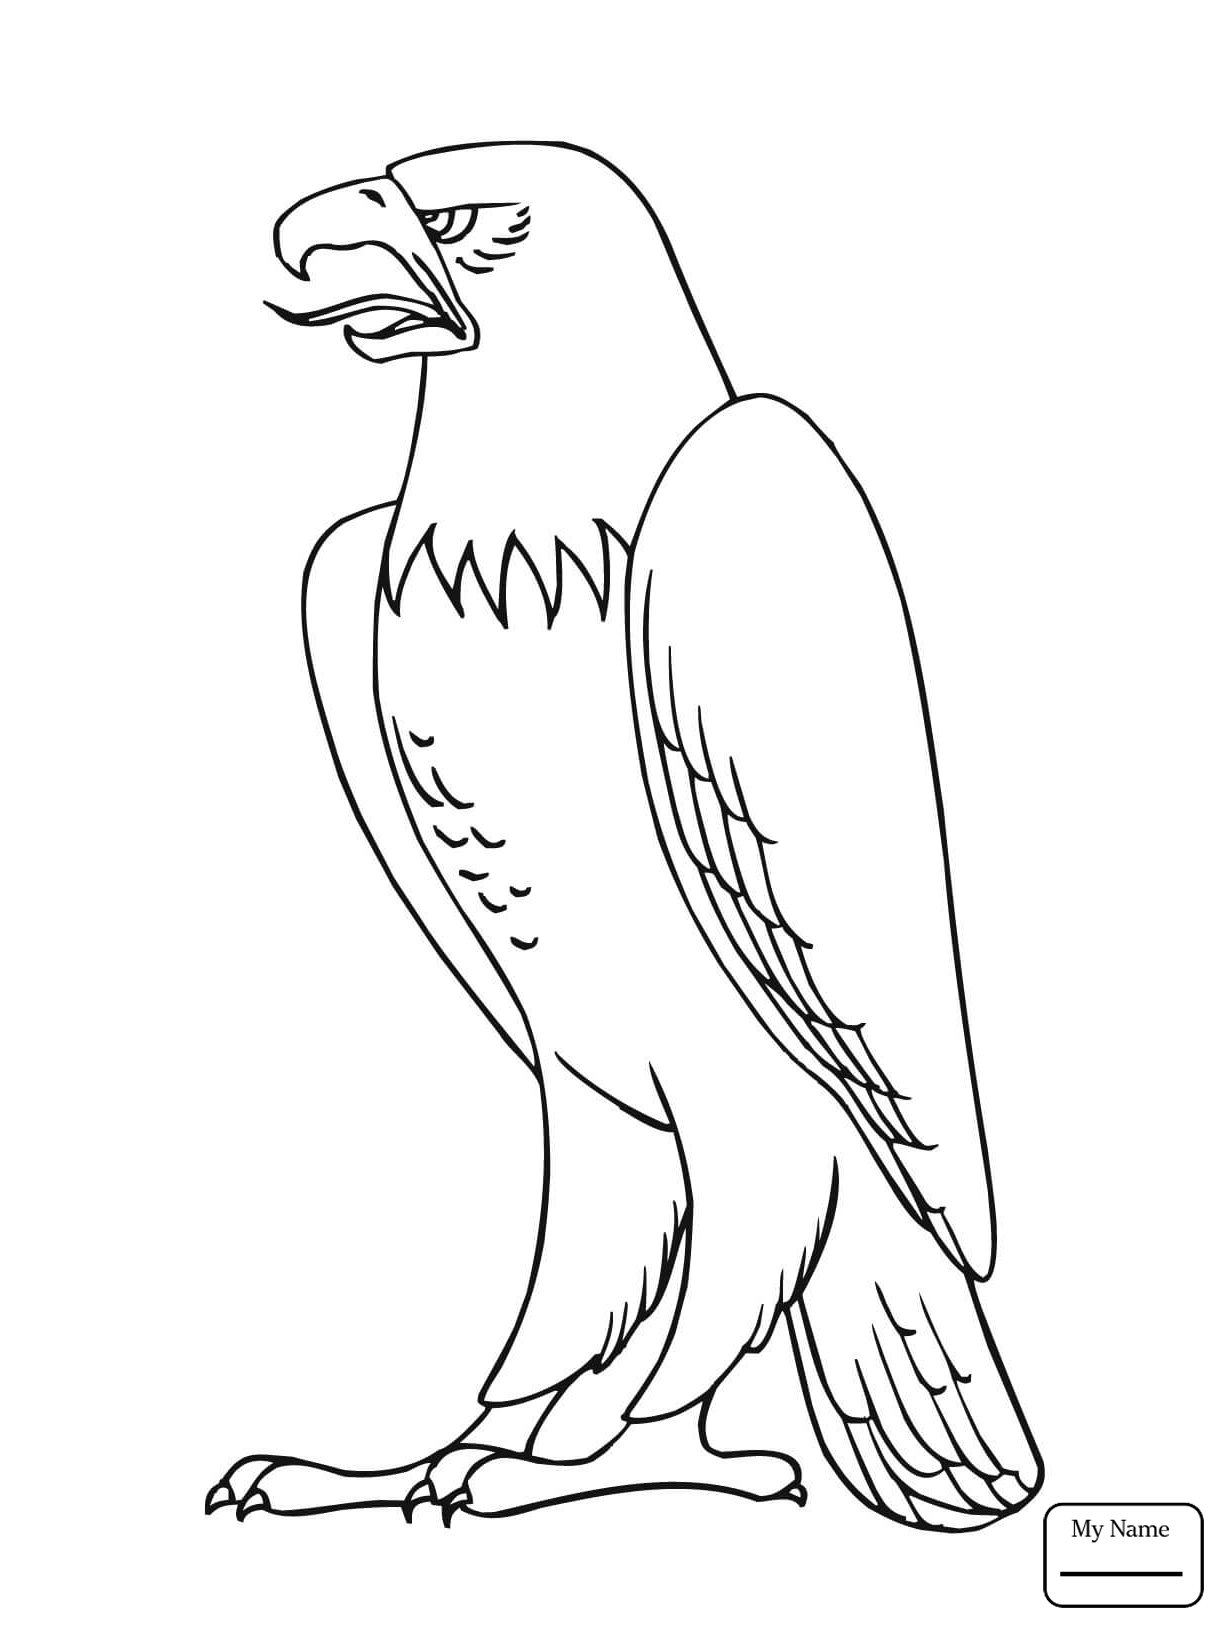 phillipine eagle coloring pages - photo#20